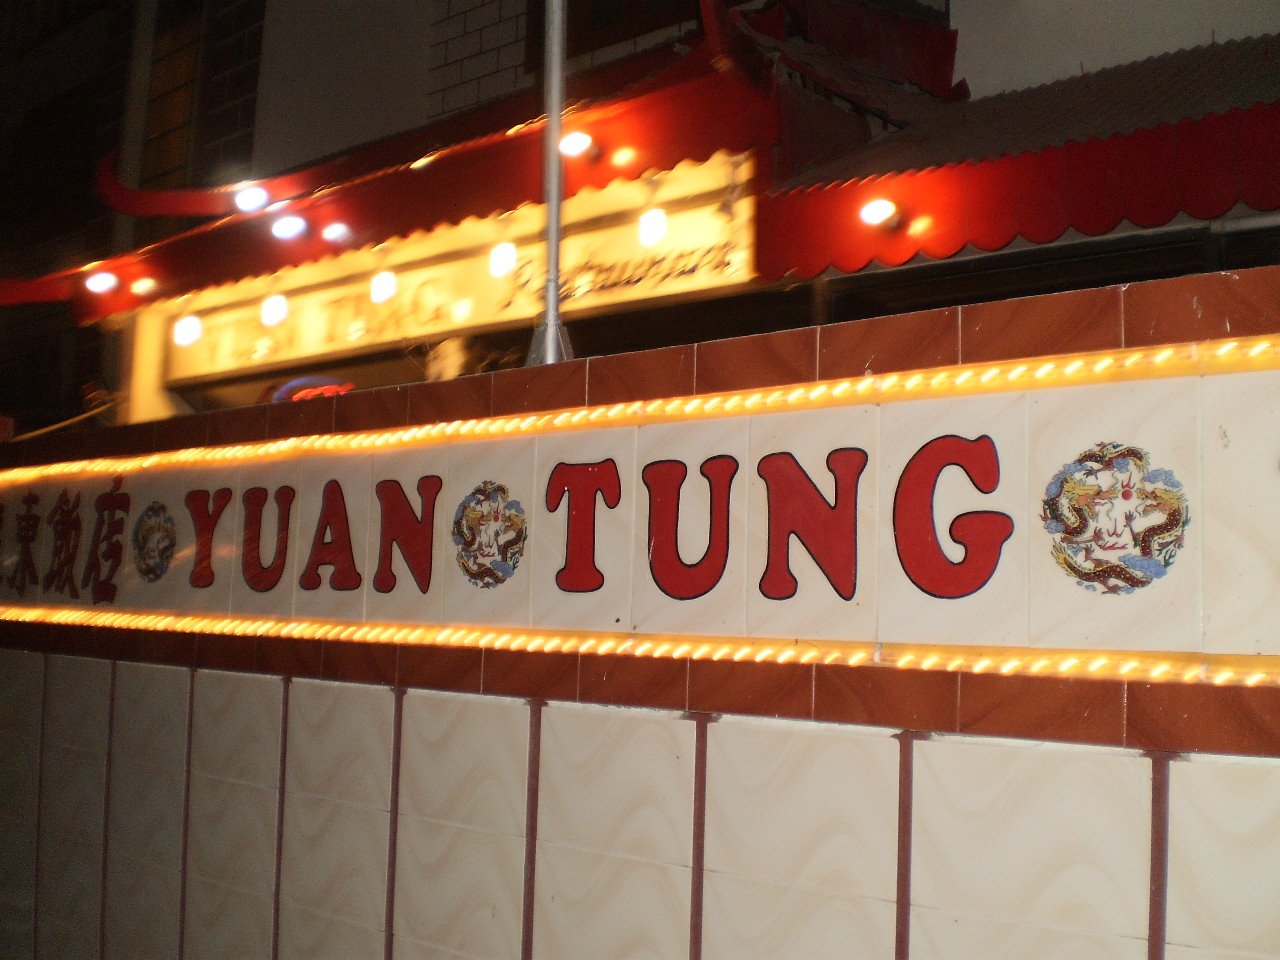 Karachi eating out yuan tung chinese restaurant pechs for Asian cuisine restaurant names